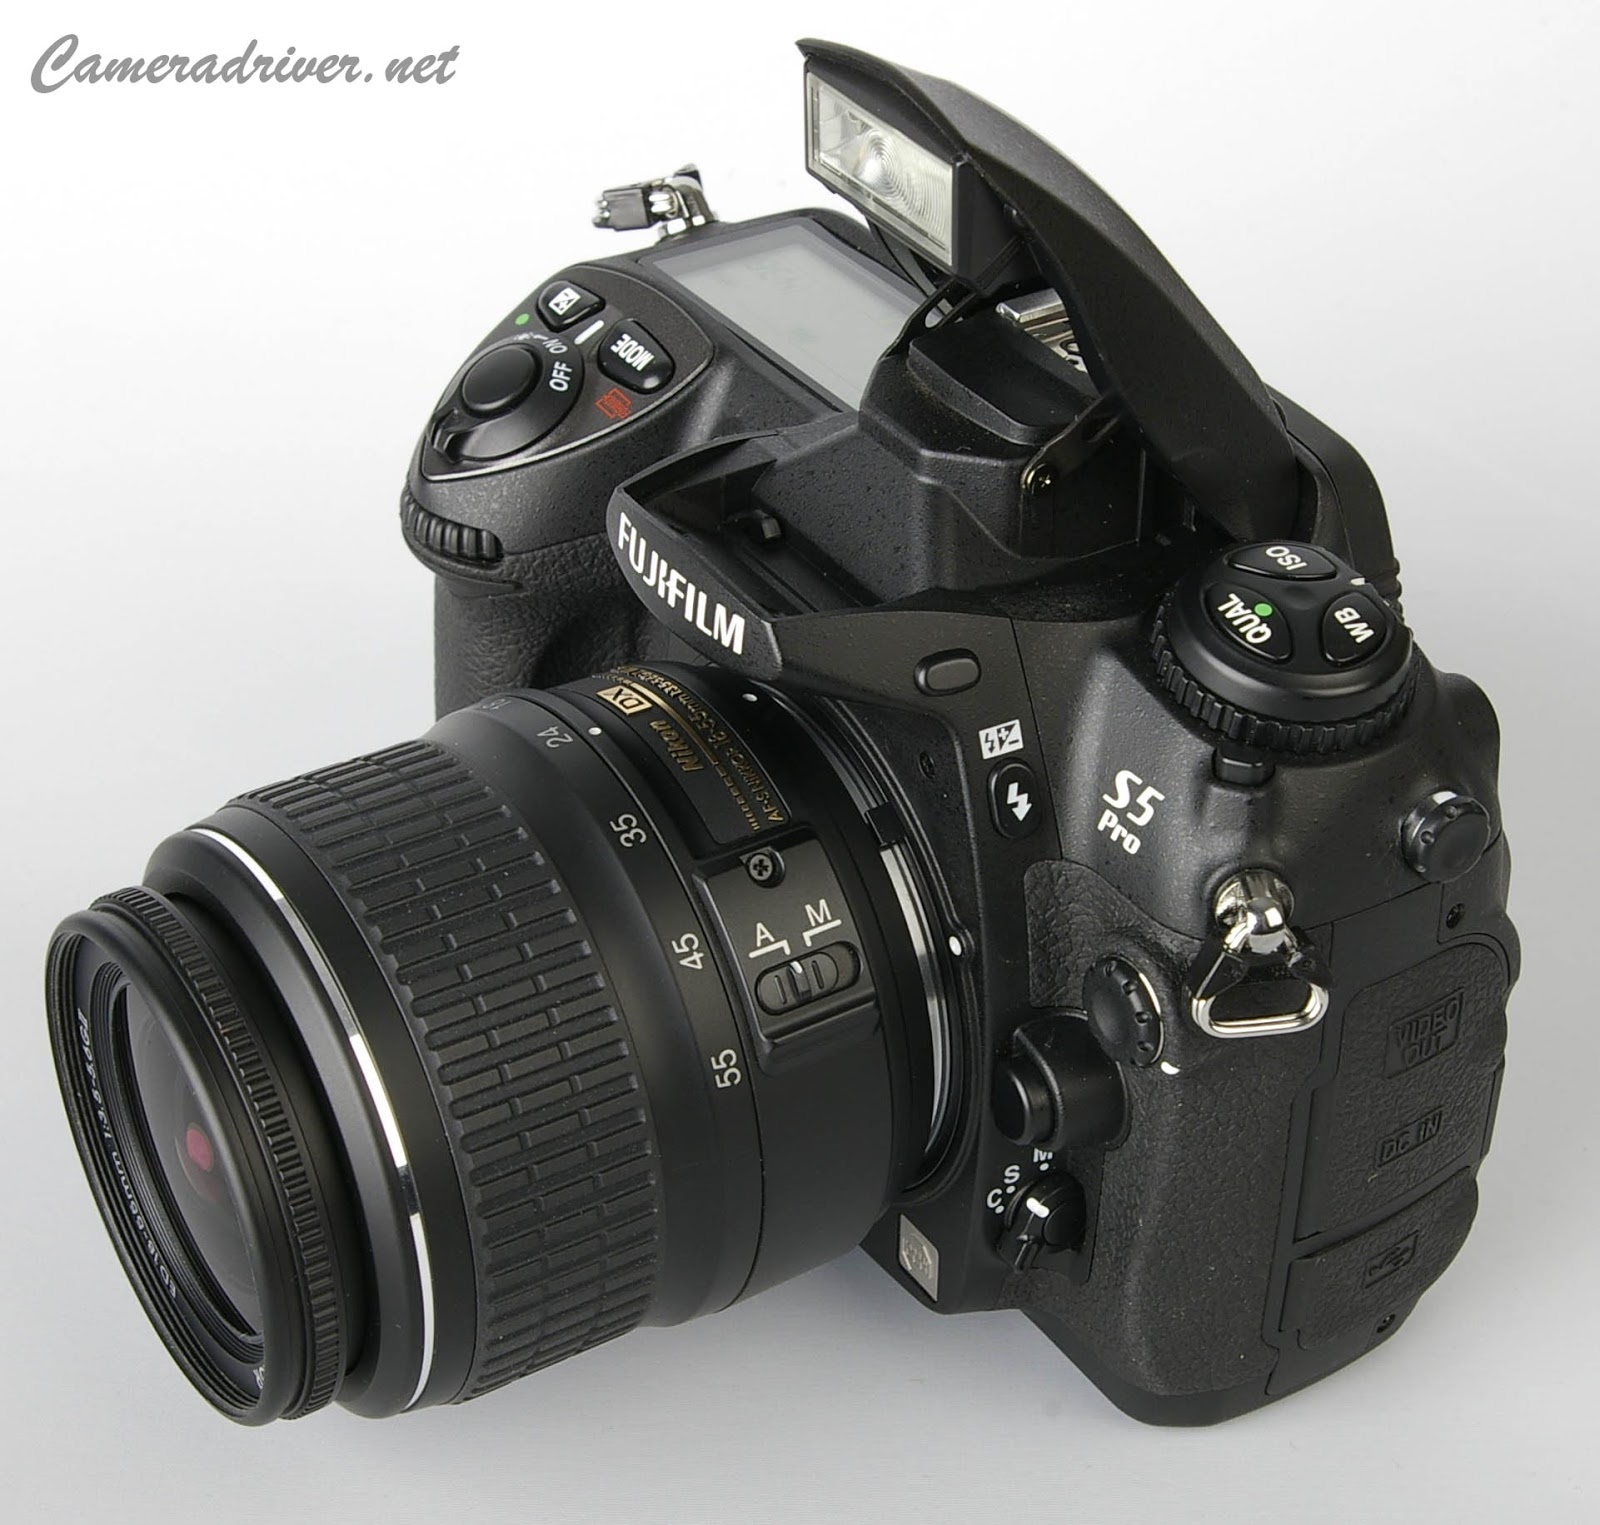 Fujifilm finepix s5 pro software download camera driver.